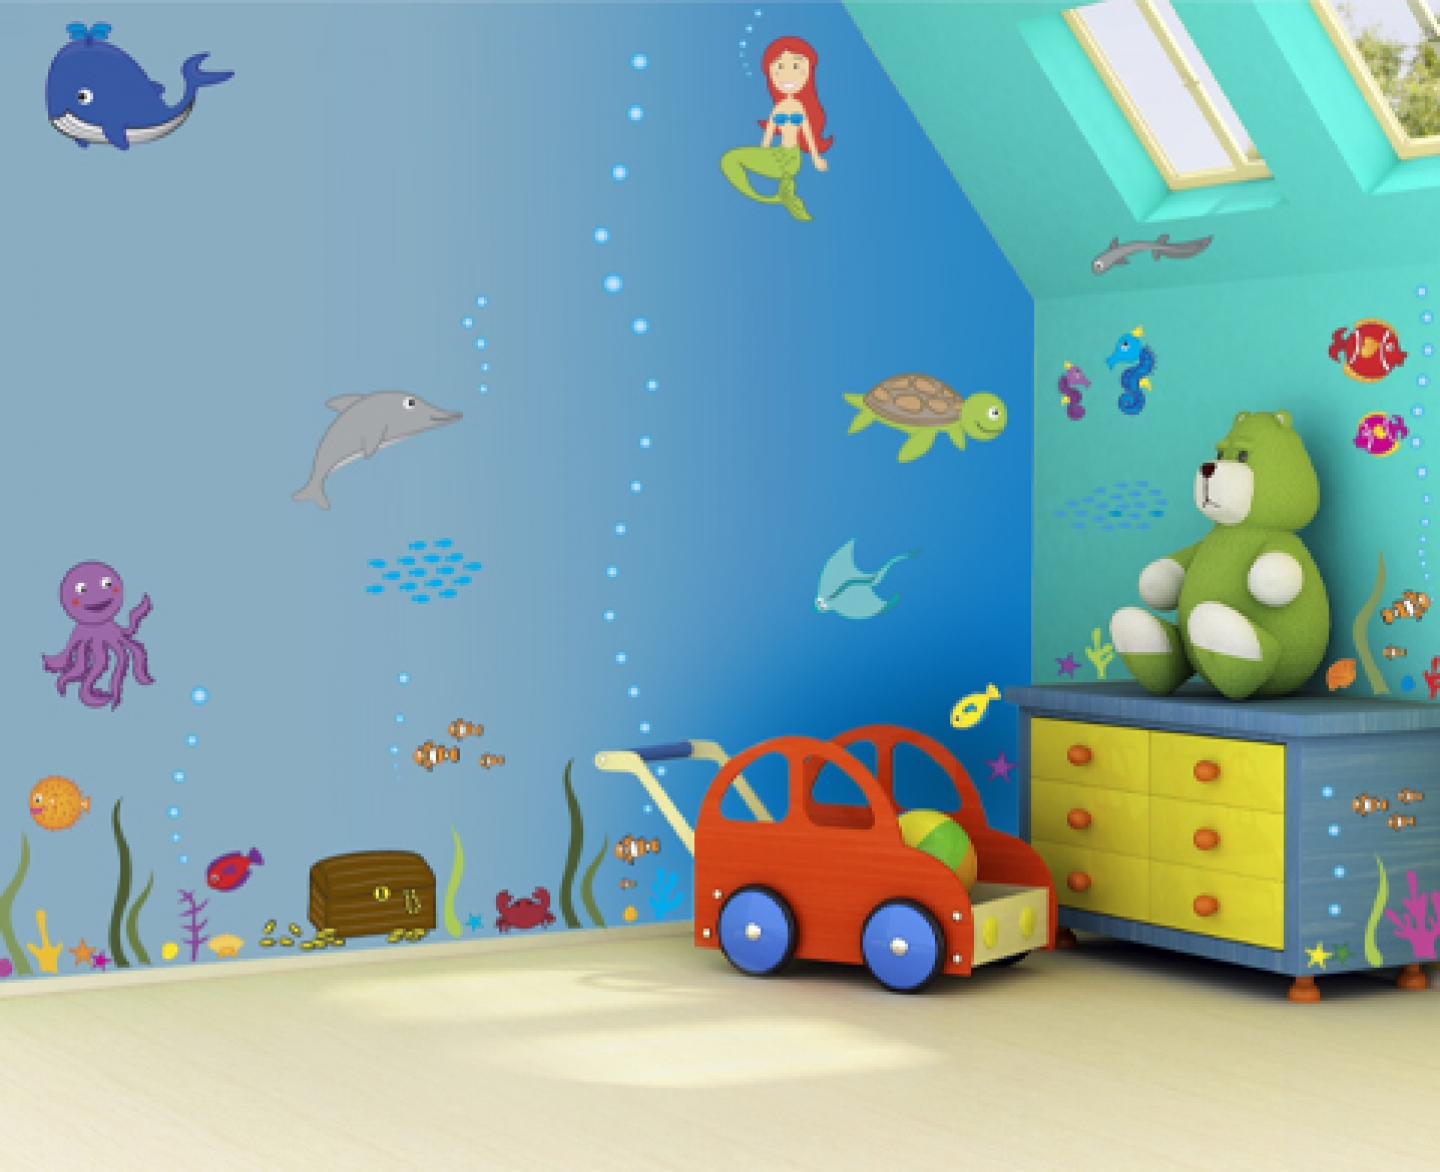 Wall art d cor ideas for kids room my decorative Kids room wall painting design